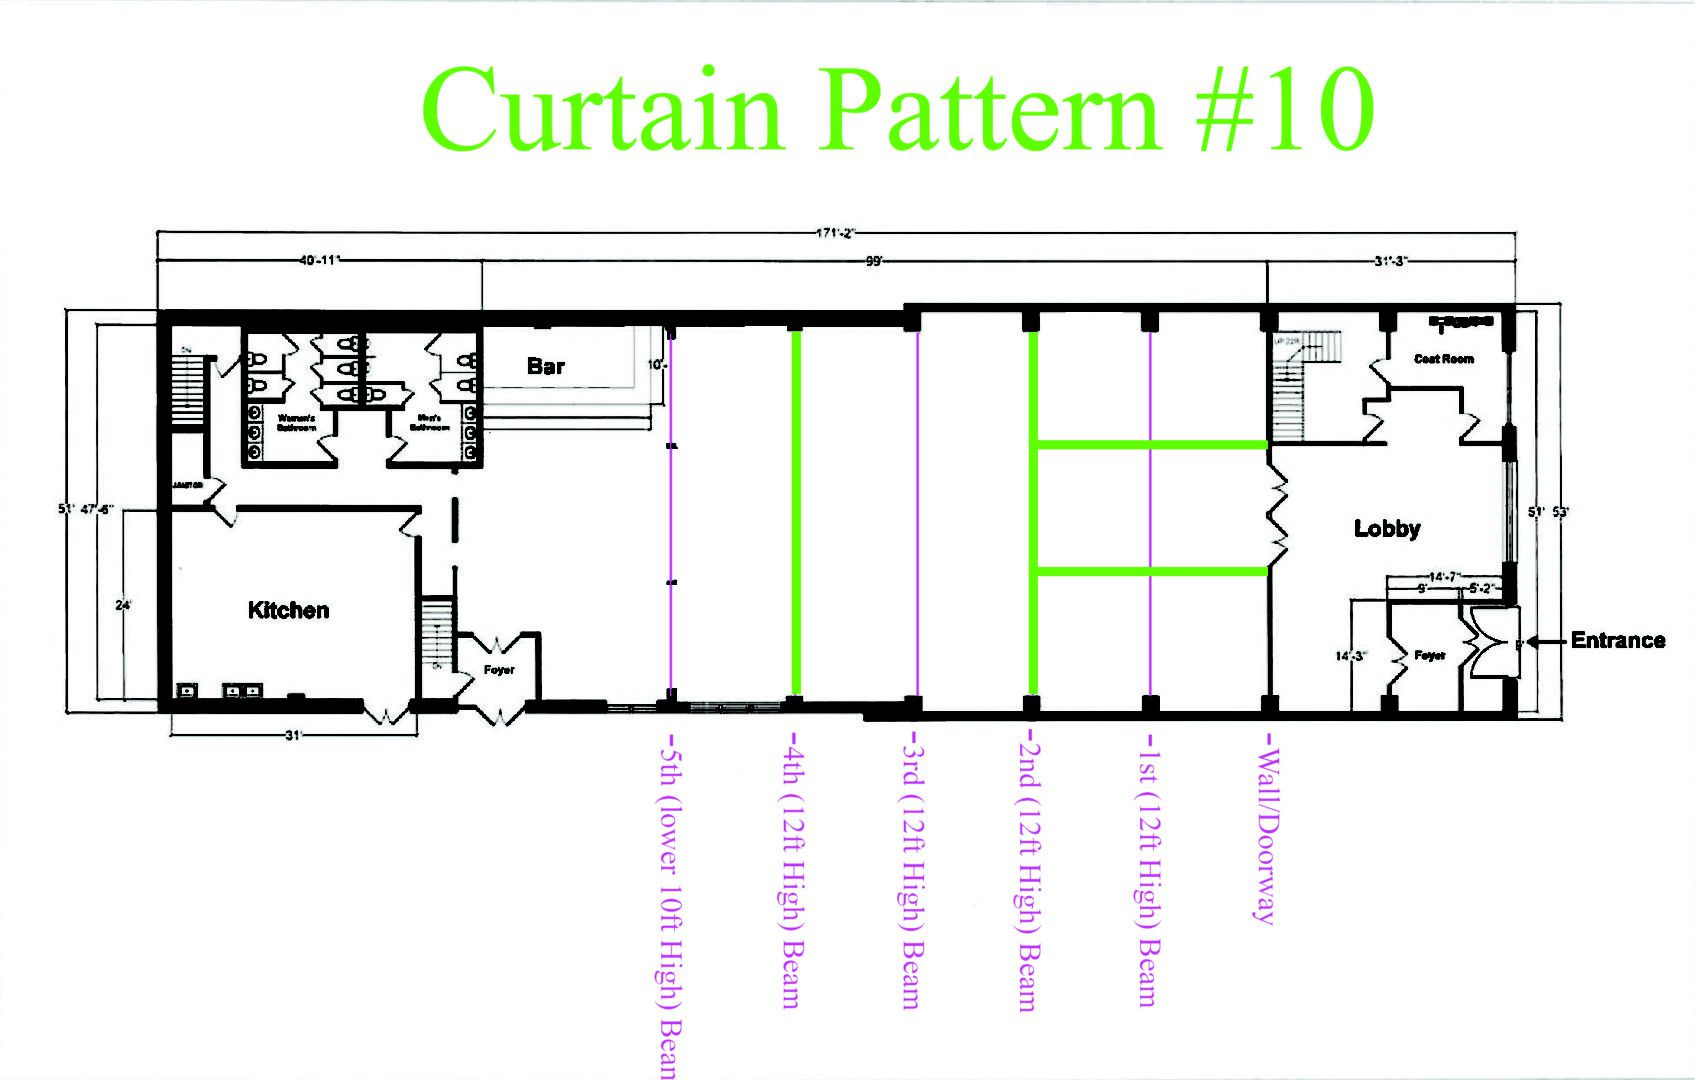 Suspended across the width of the Main Room under the 2nd Beam and 4th Beam. Also suspended the length of the room between 2nd Bean and Entrance wall on the Bar-Side of The Main Room and NON-Bar-Side of The Main Room. Sheer Curtain - Approximately $1,080 (Plus - NYC Sales Tax & Delivery)